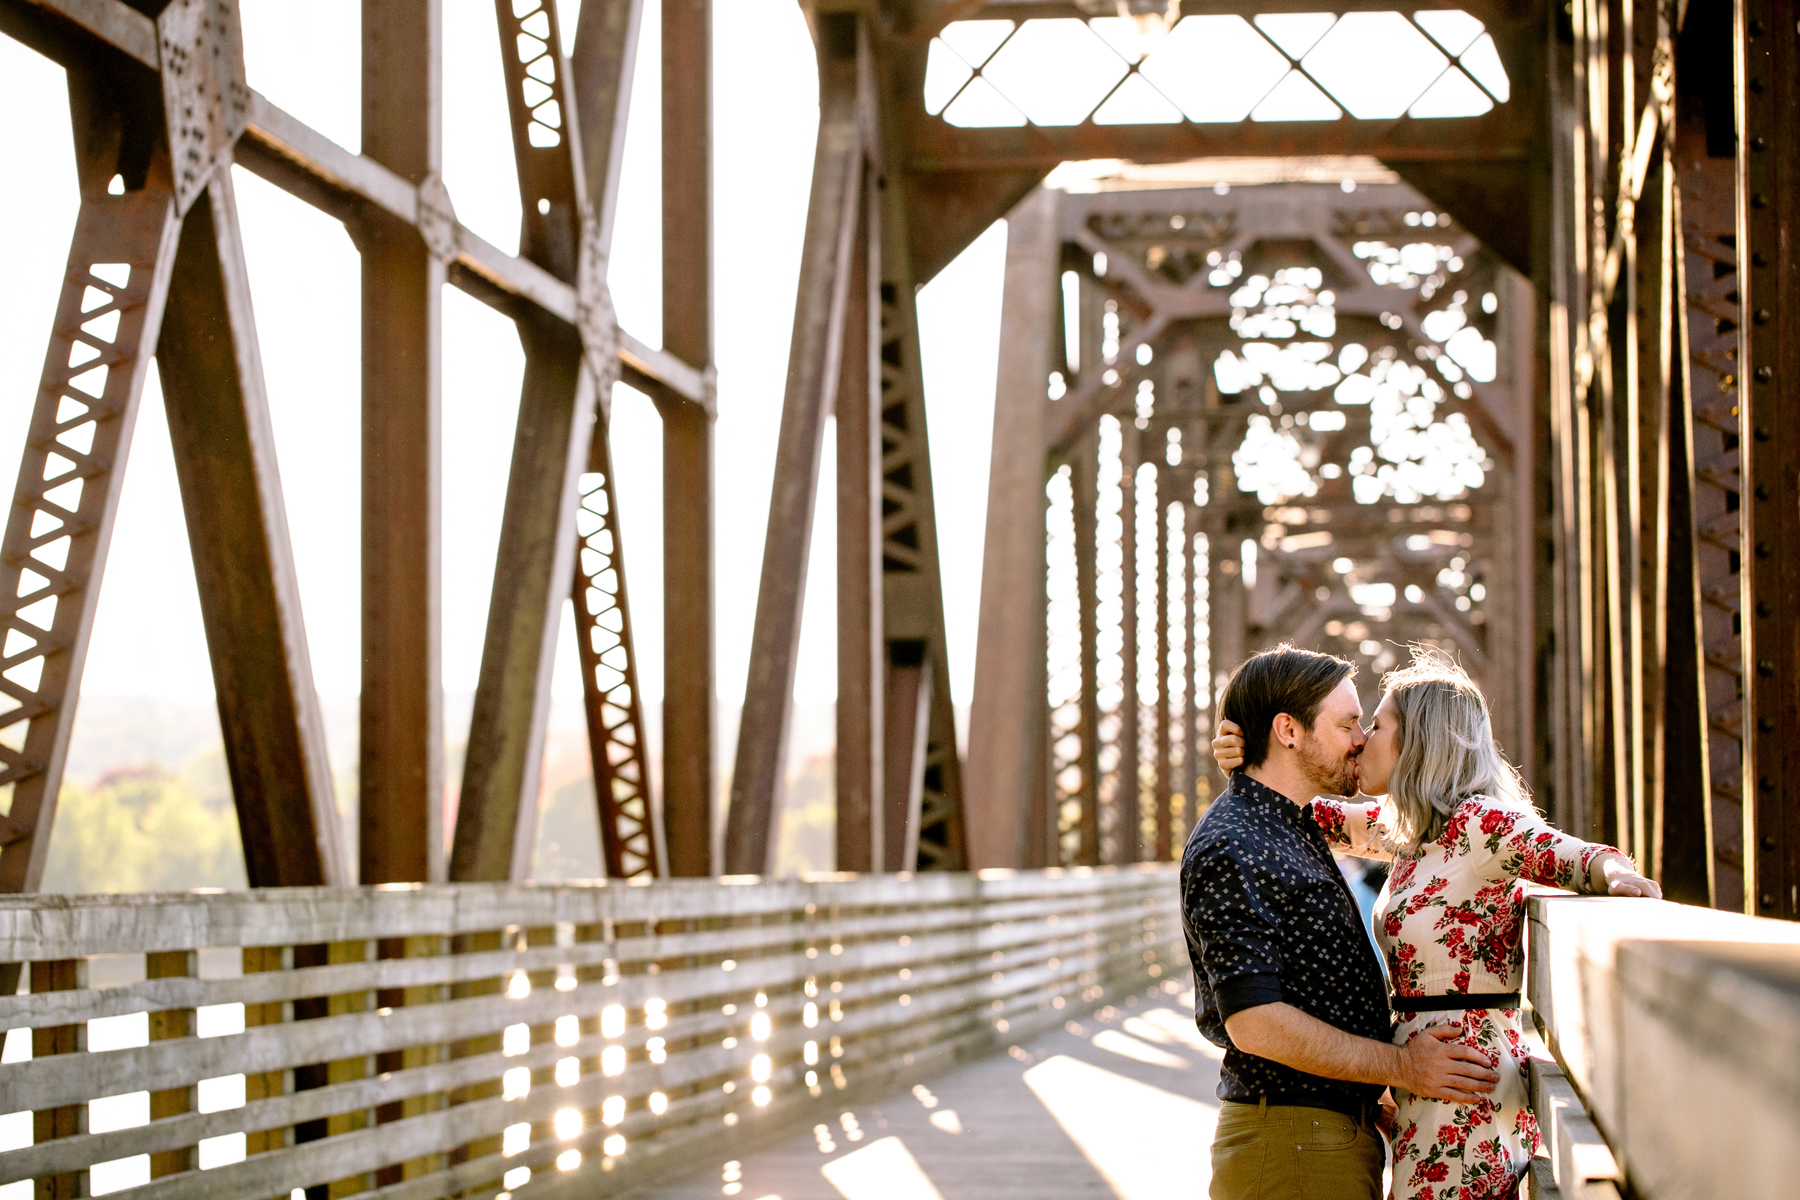 008-awesome-fredericton-engagement-photographer-kandisebrown-kd2016